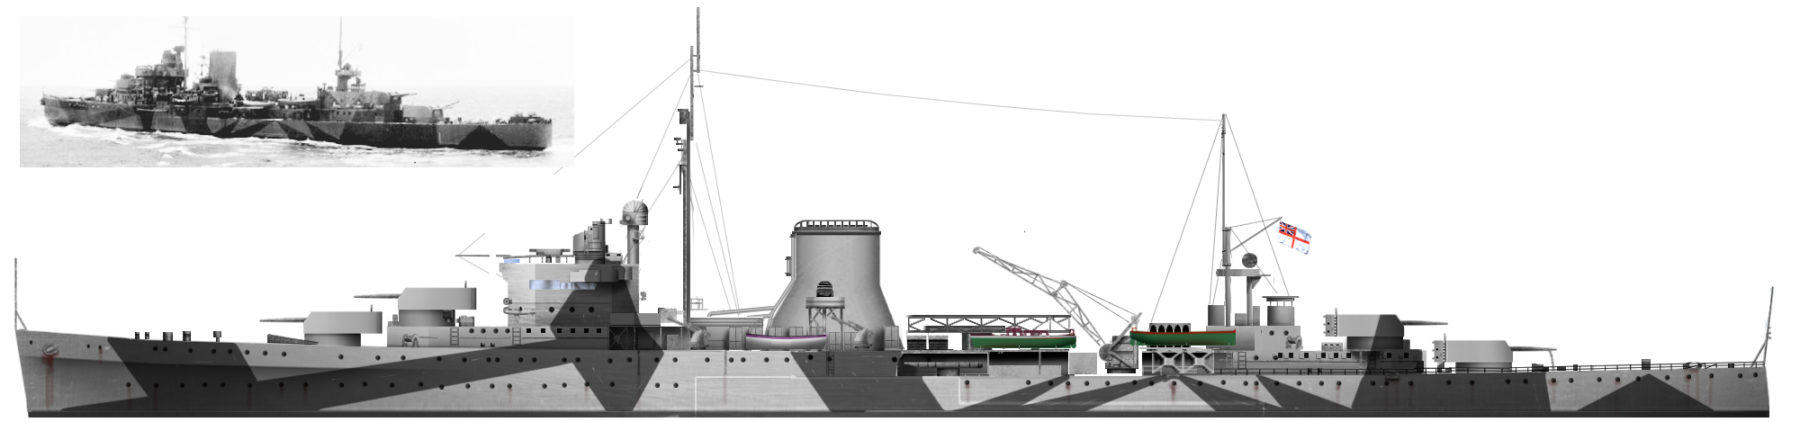 HMS leander in 1942 - Author's HD illustration